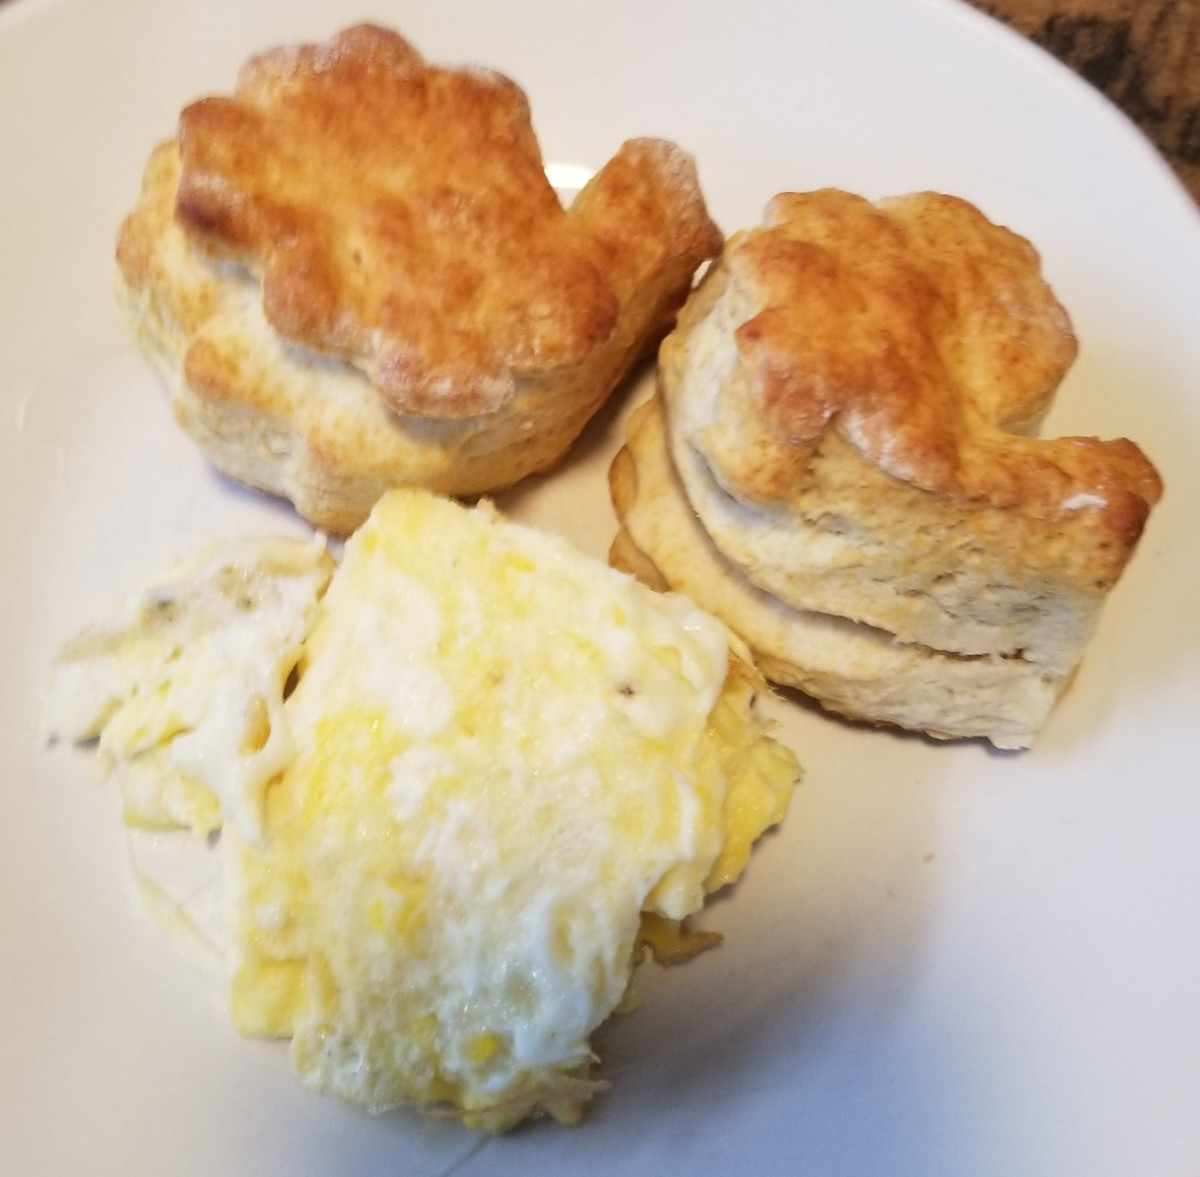 These turkey-shaped biscuits look yummy paired with eggs. You can put them in a pretty basket on your Thanksgiving table too.